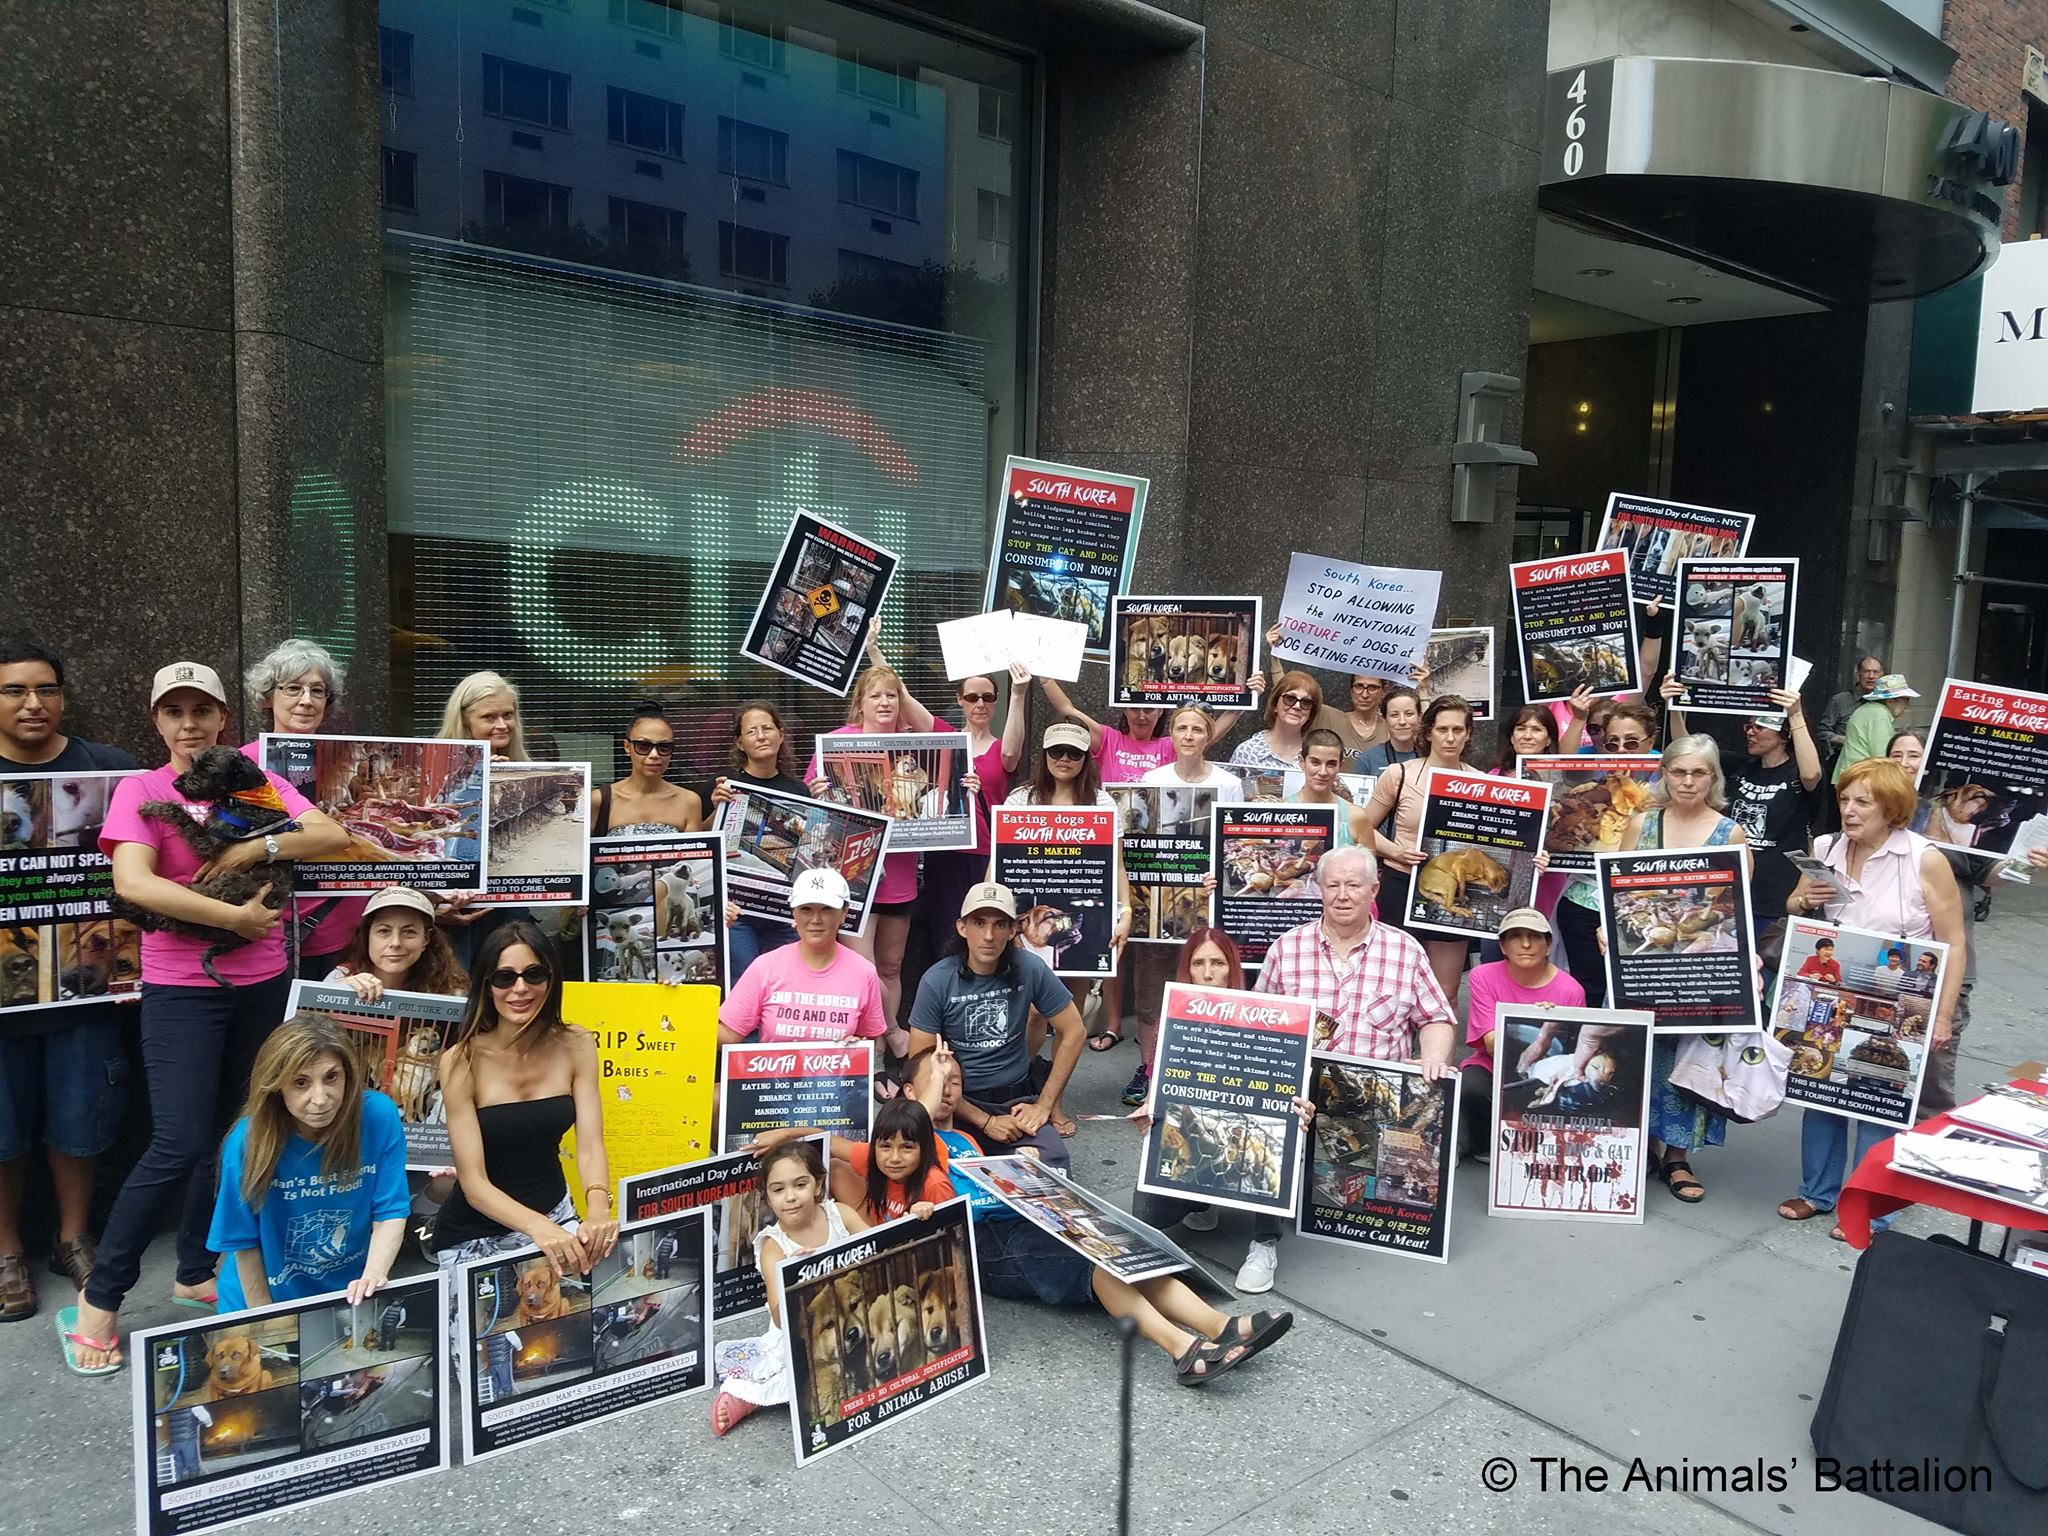 The Animals' Battalion 2017 'Boknal' Demonstrations in New York